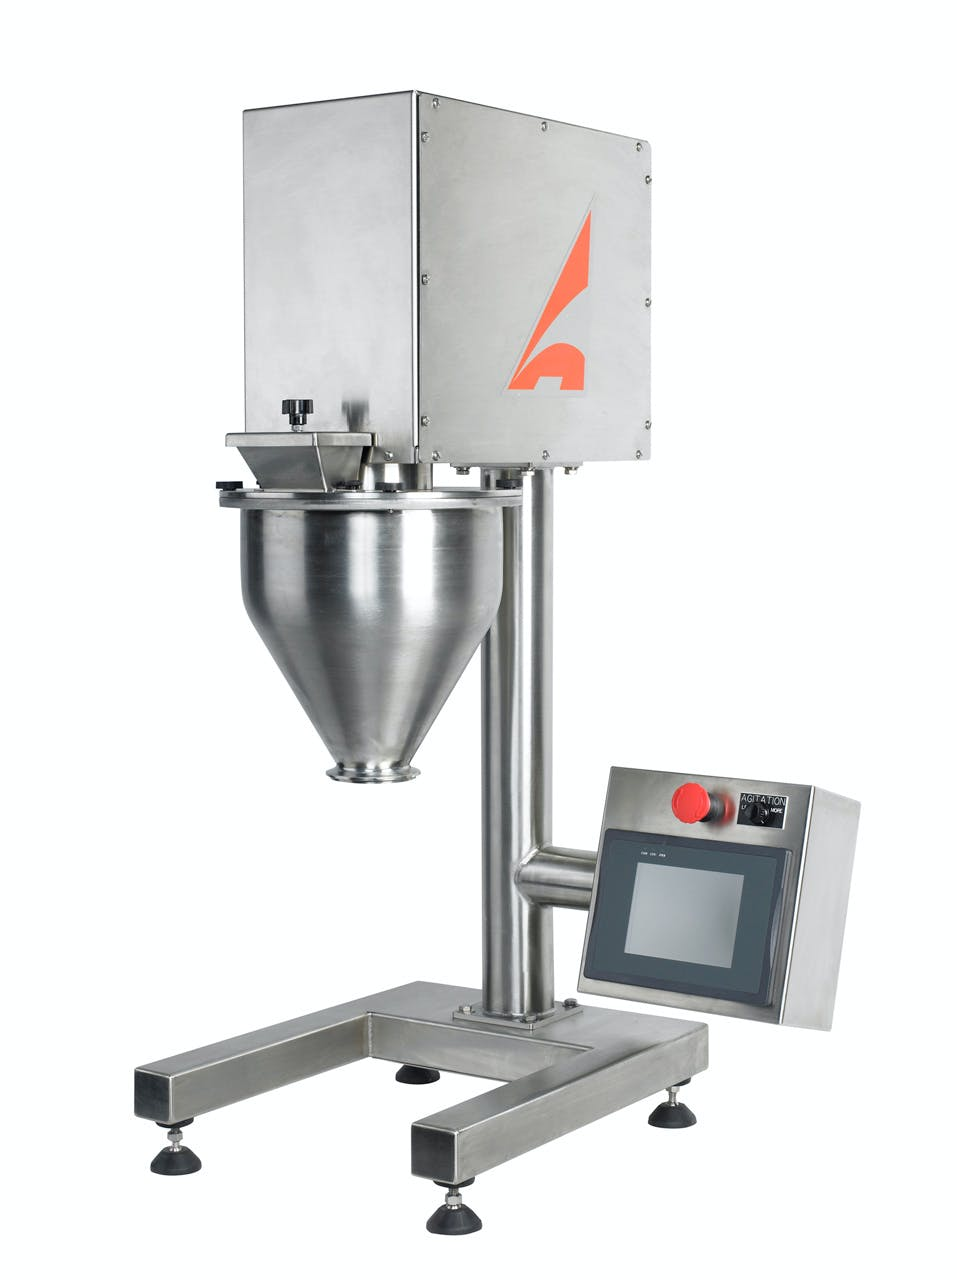 CF-SV-600 Auger filler sold by All-Fill